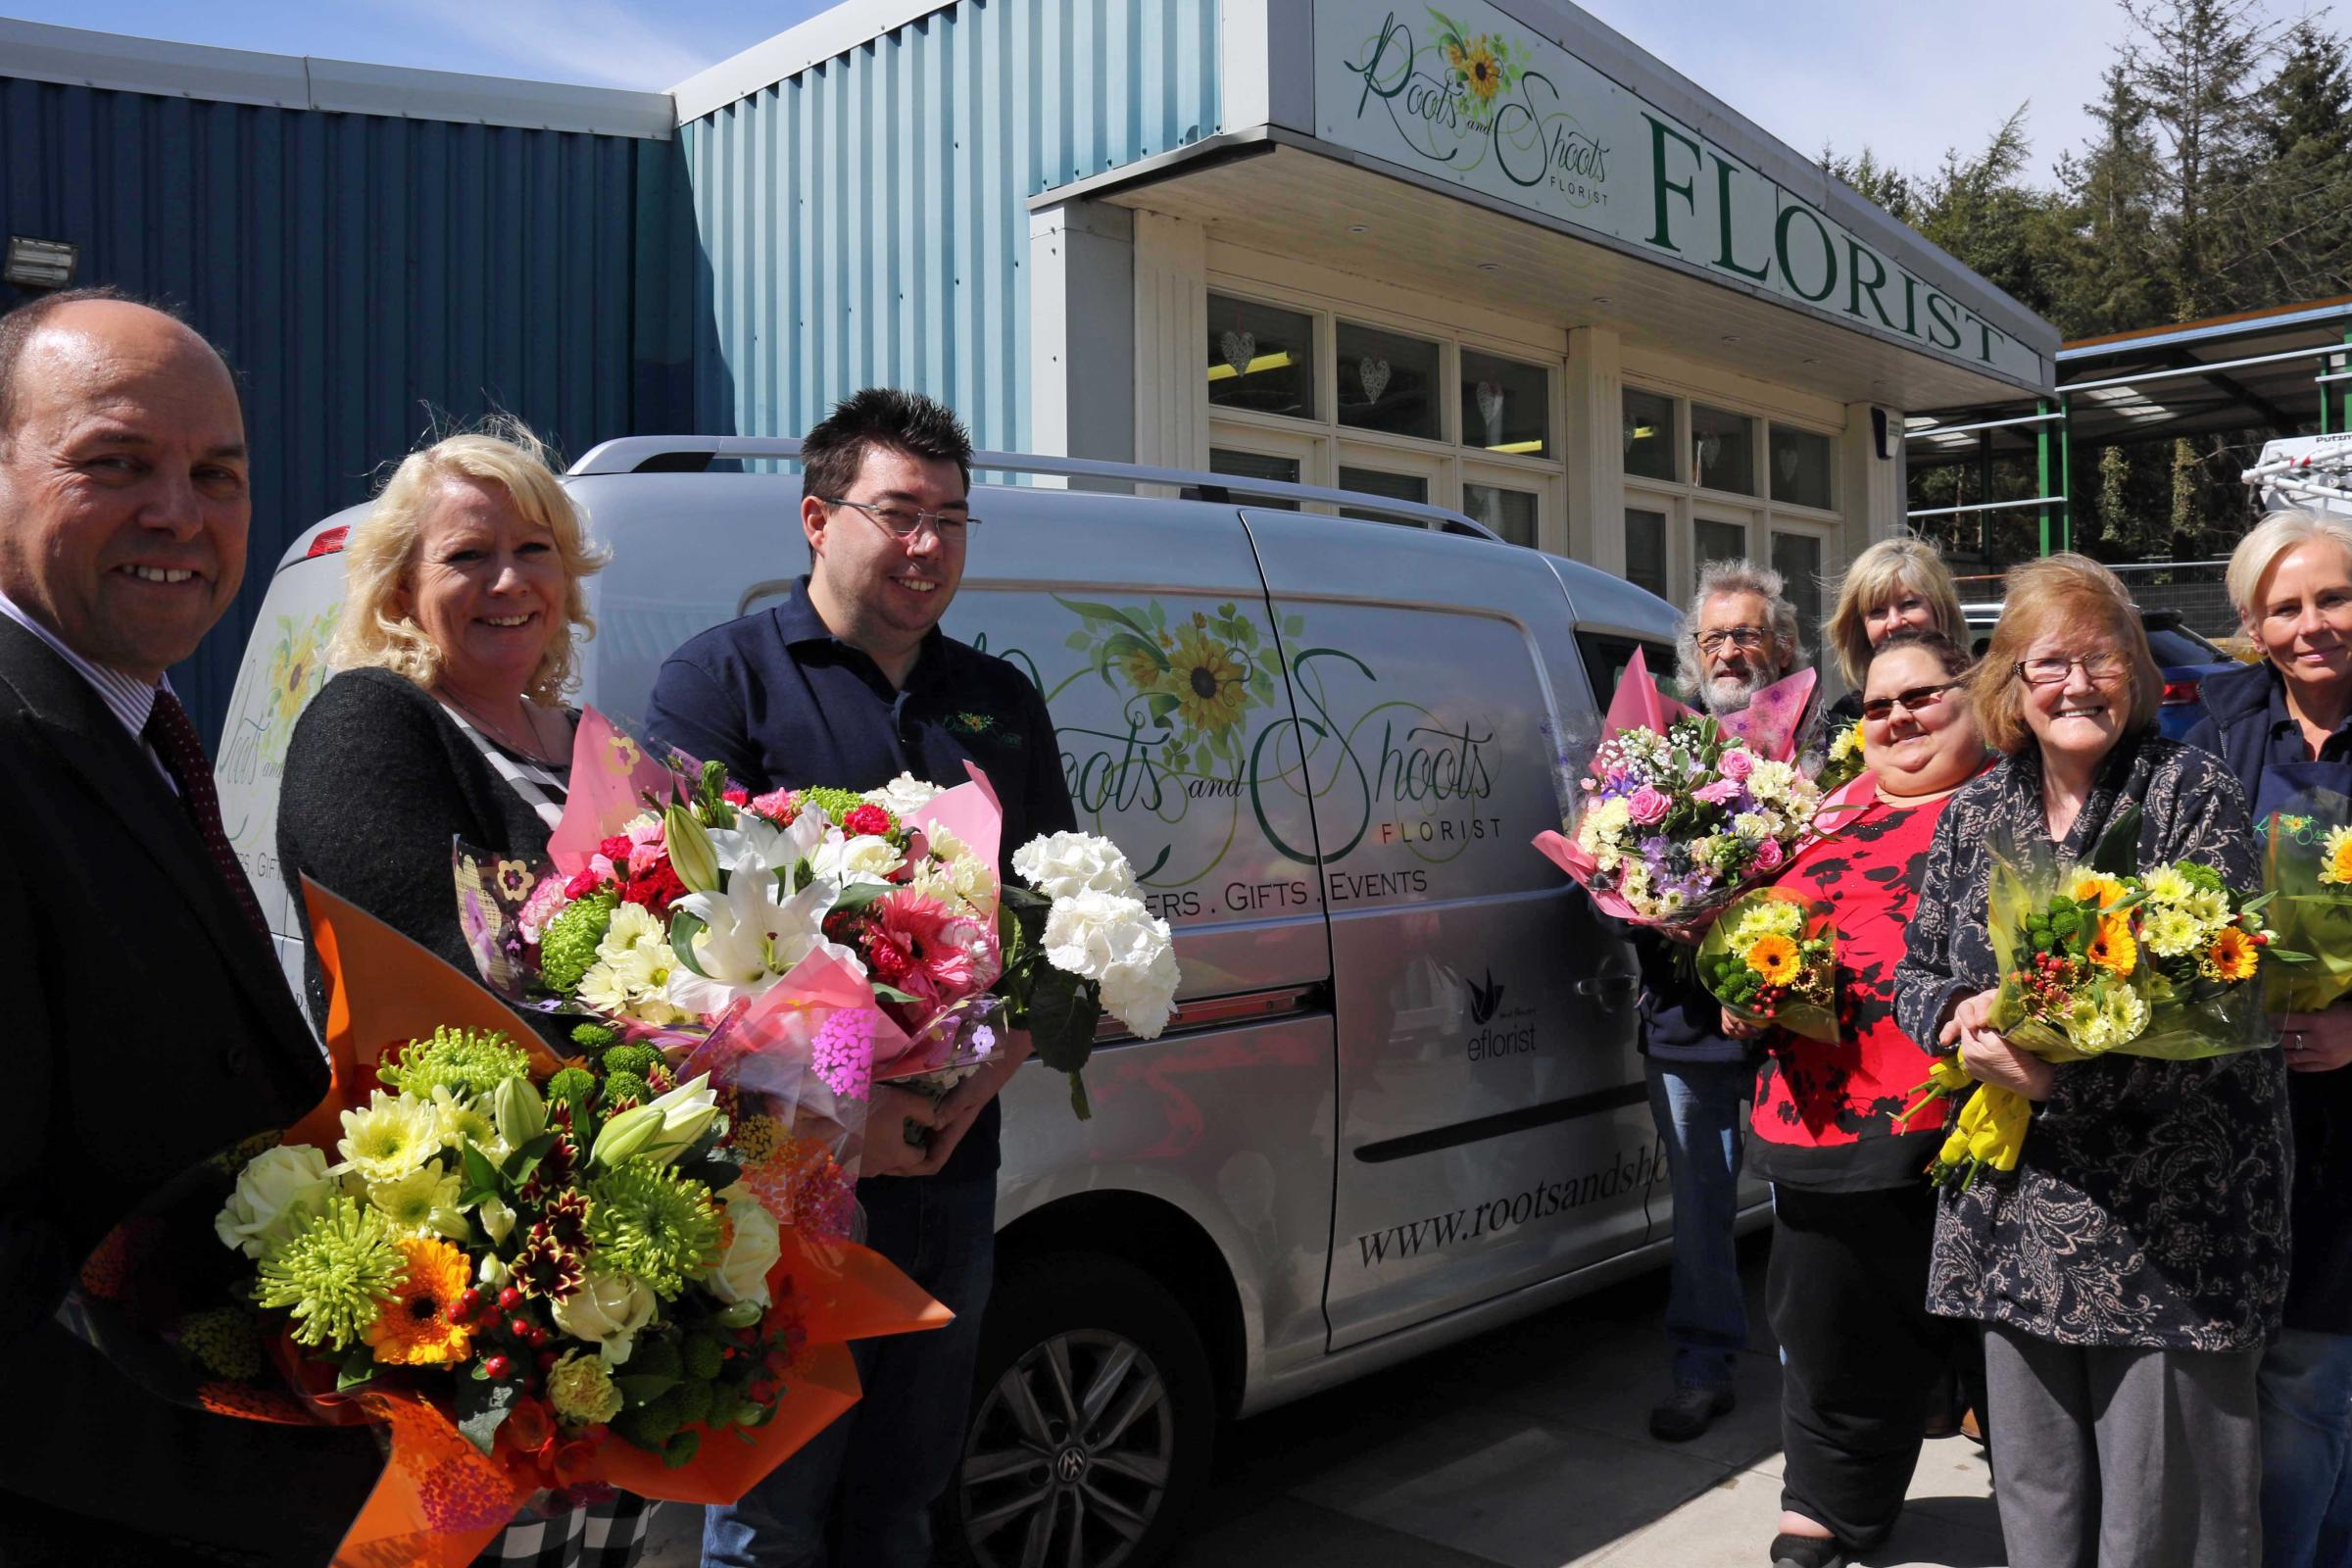 Growing business: (L-R) Tony Luckett of Clive Owen LLP; Karolyn Scott of BHP Law; owner William Gardner; previous owner Norman Bell; florist Debra Redfern; Lizzie Gardner with Angela Bell; and florist Katrina George.